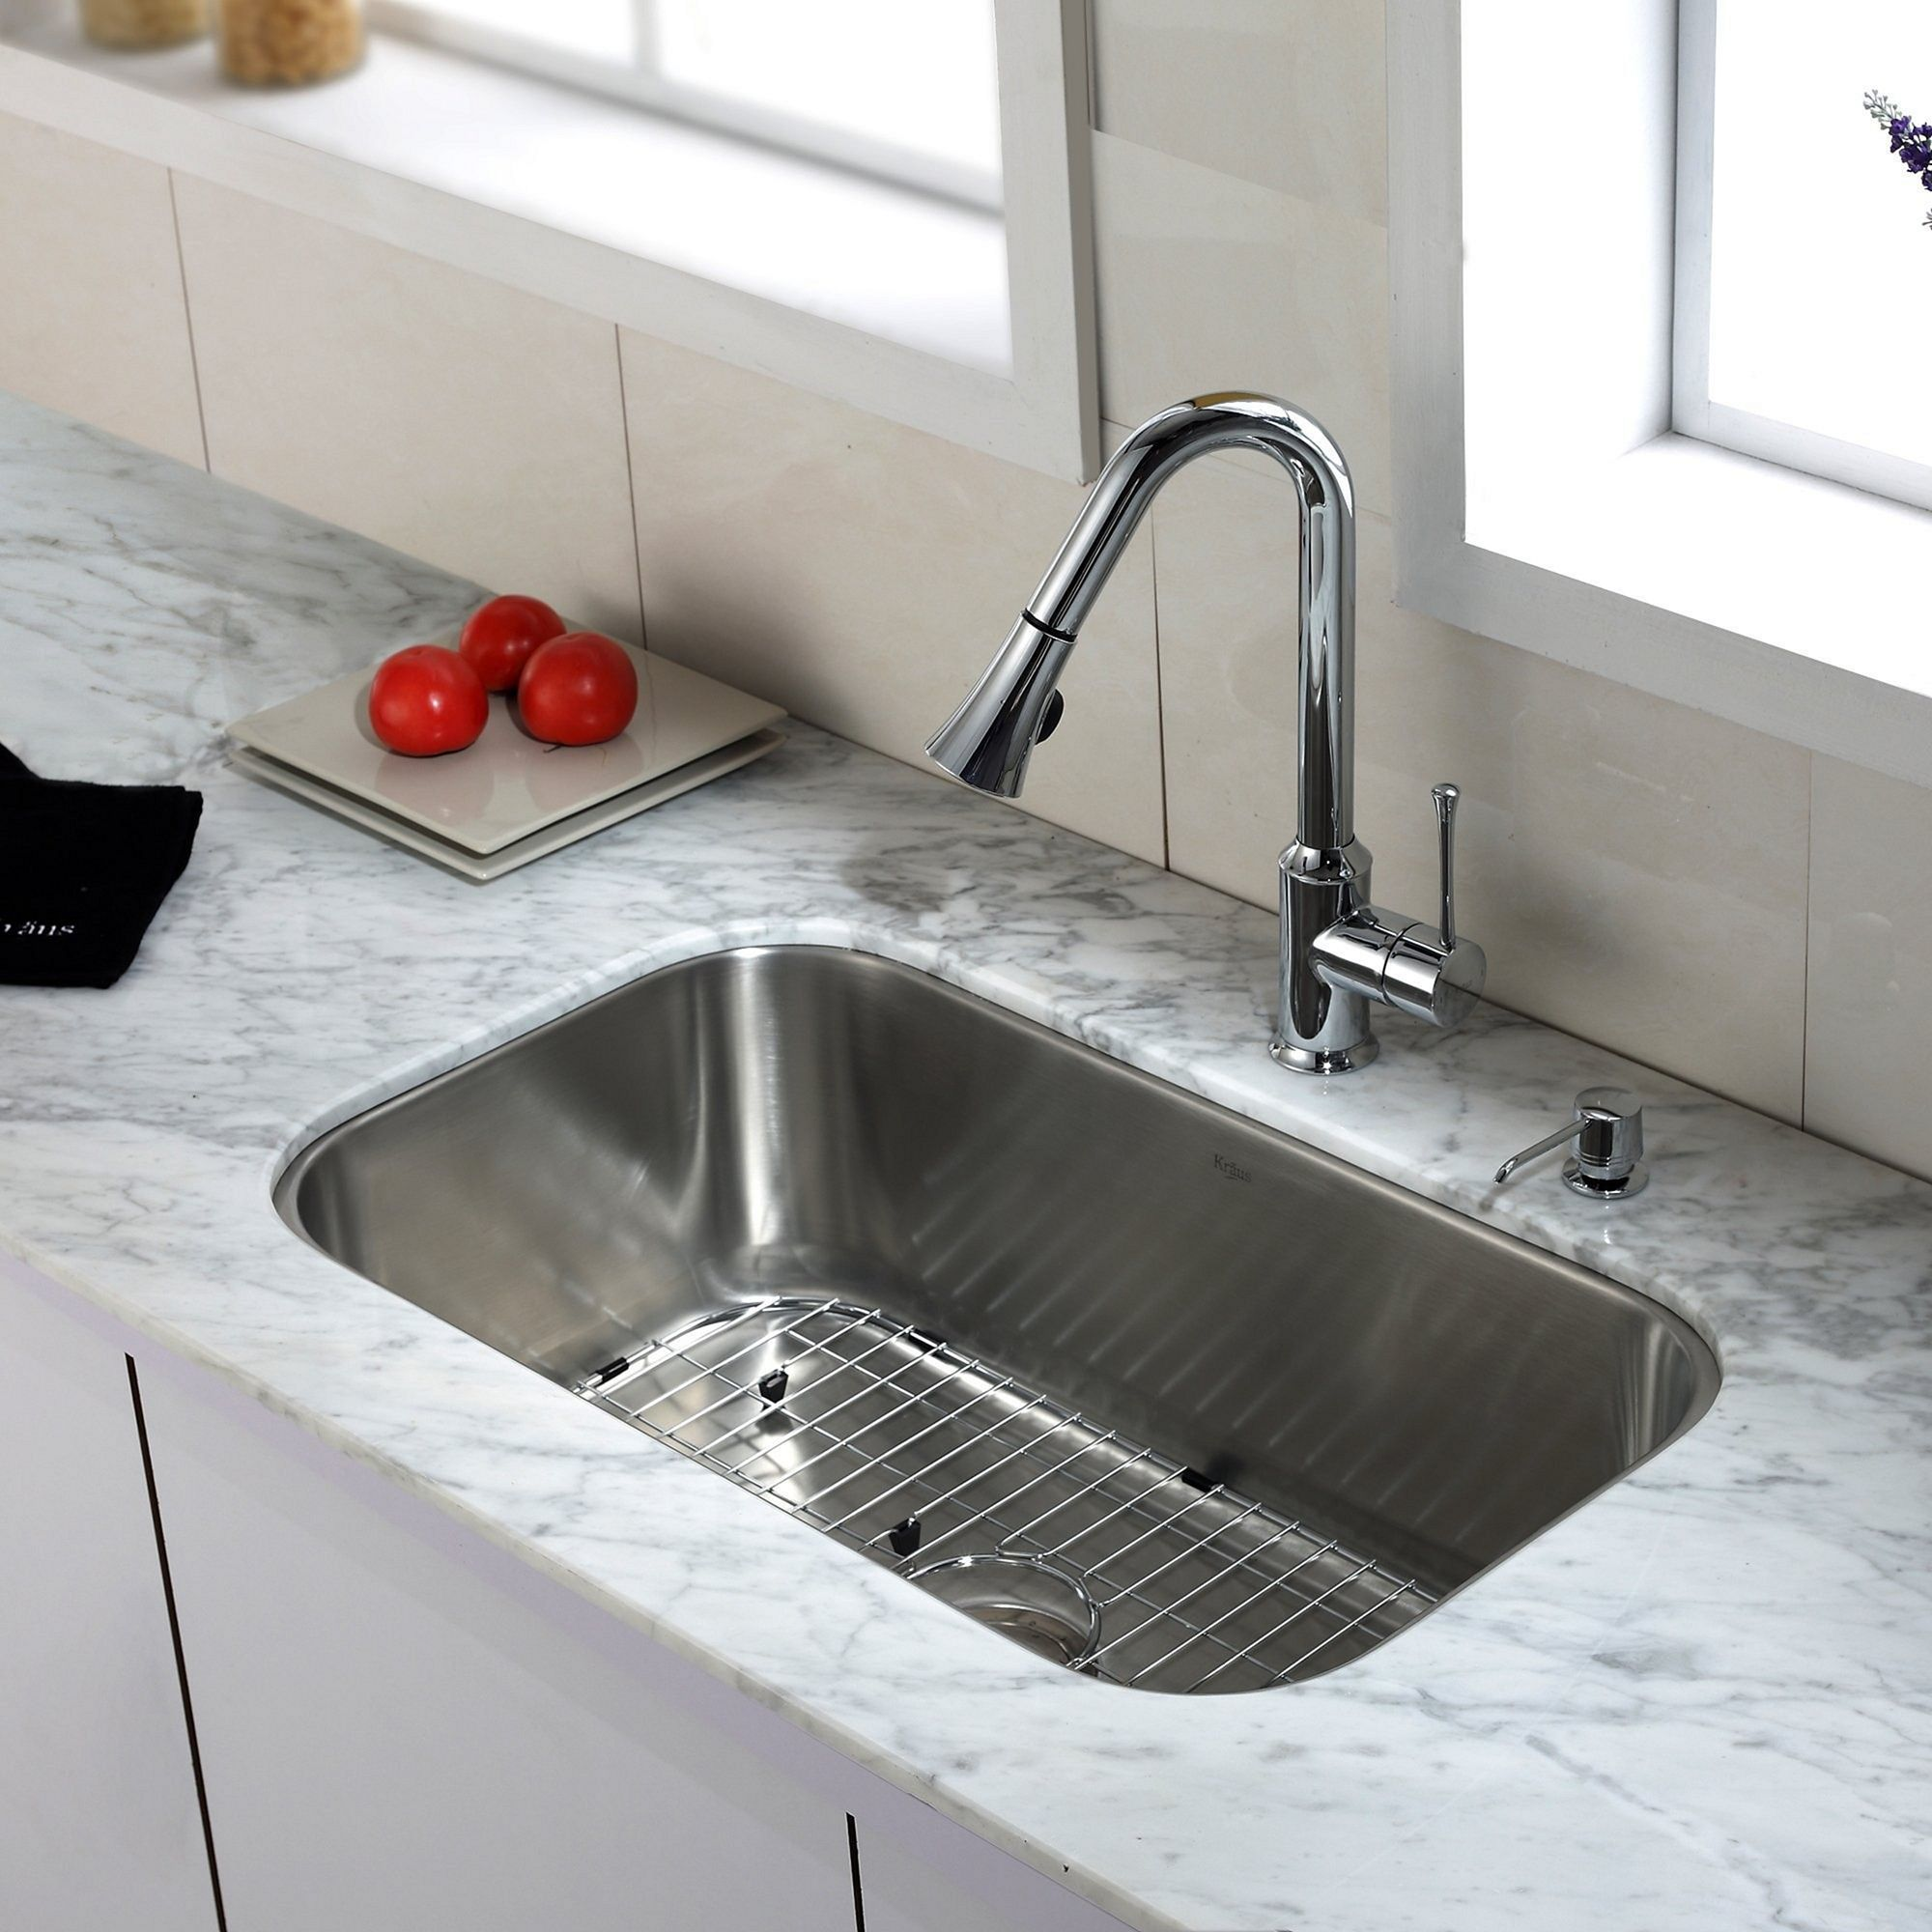 - 35+ Top Stainless Steel Kitchen Sinks Design Ideas You Need To